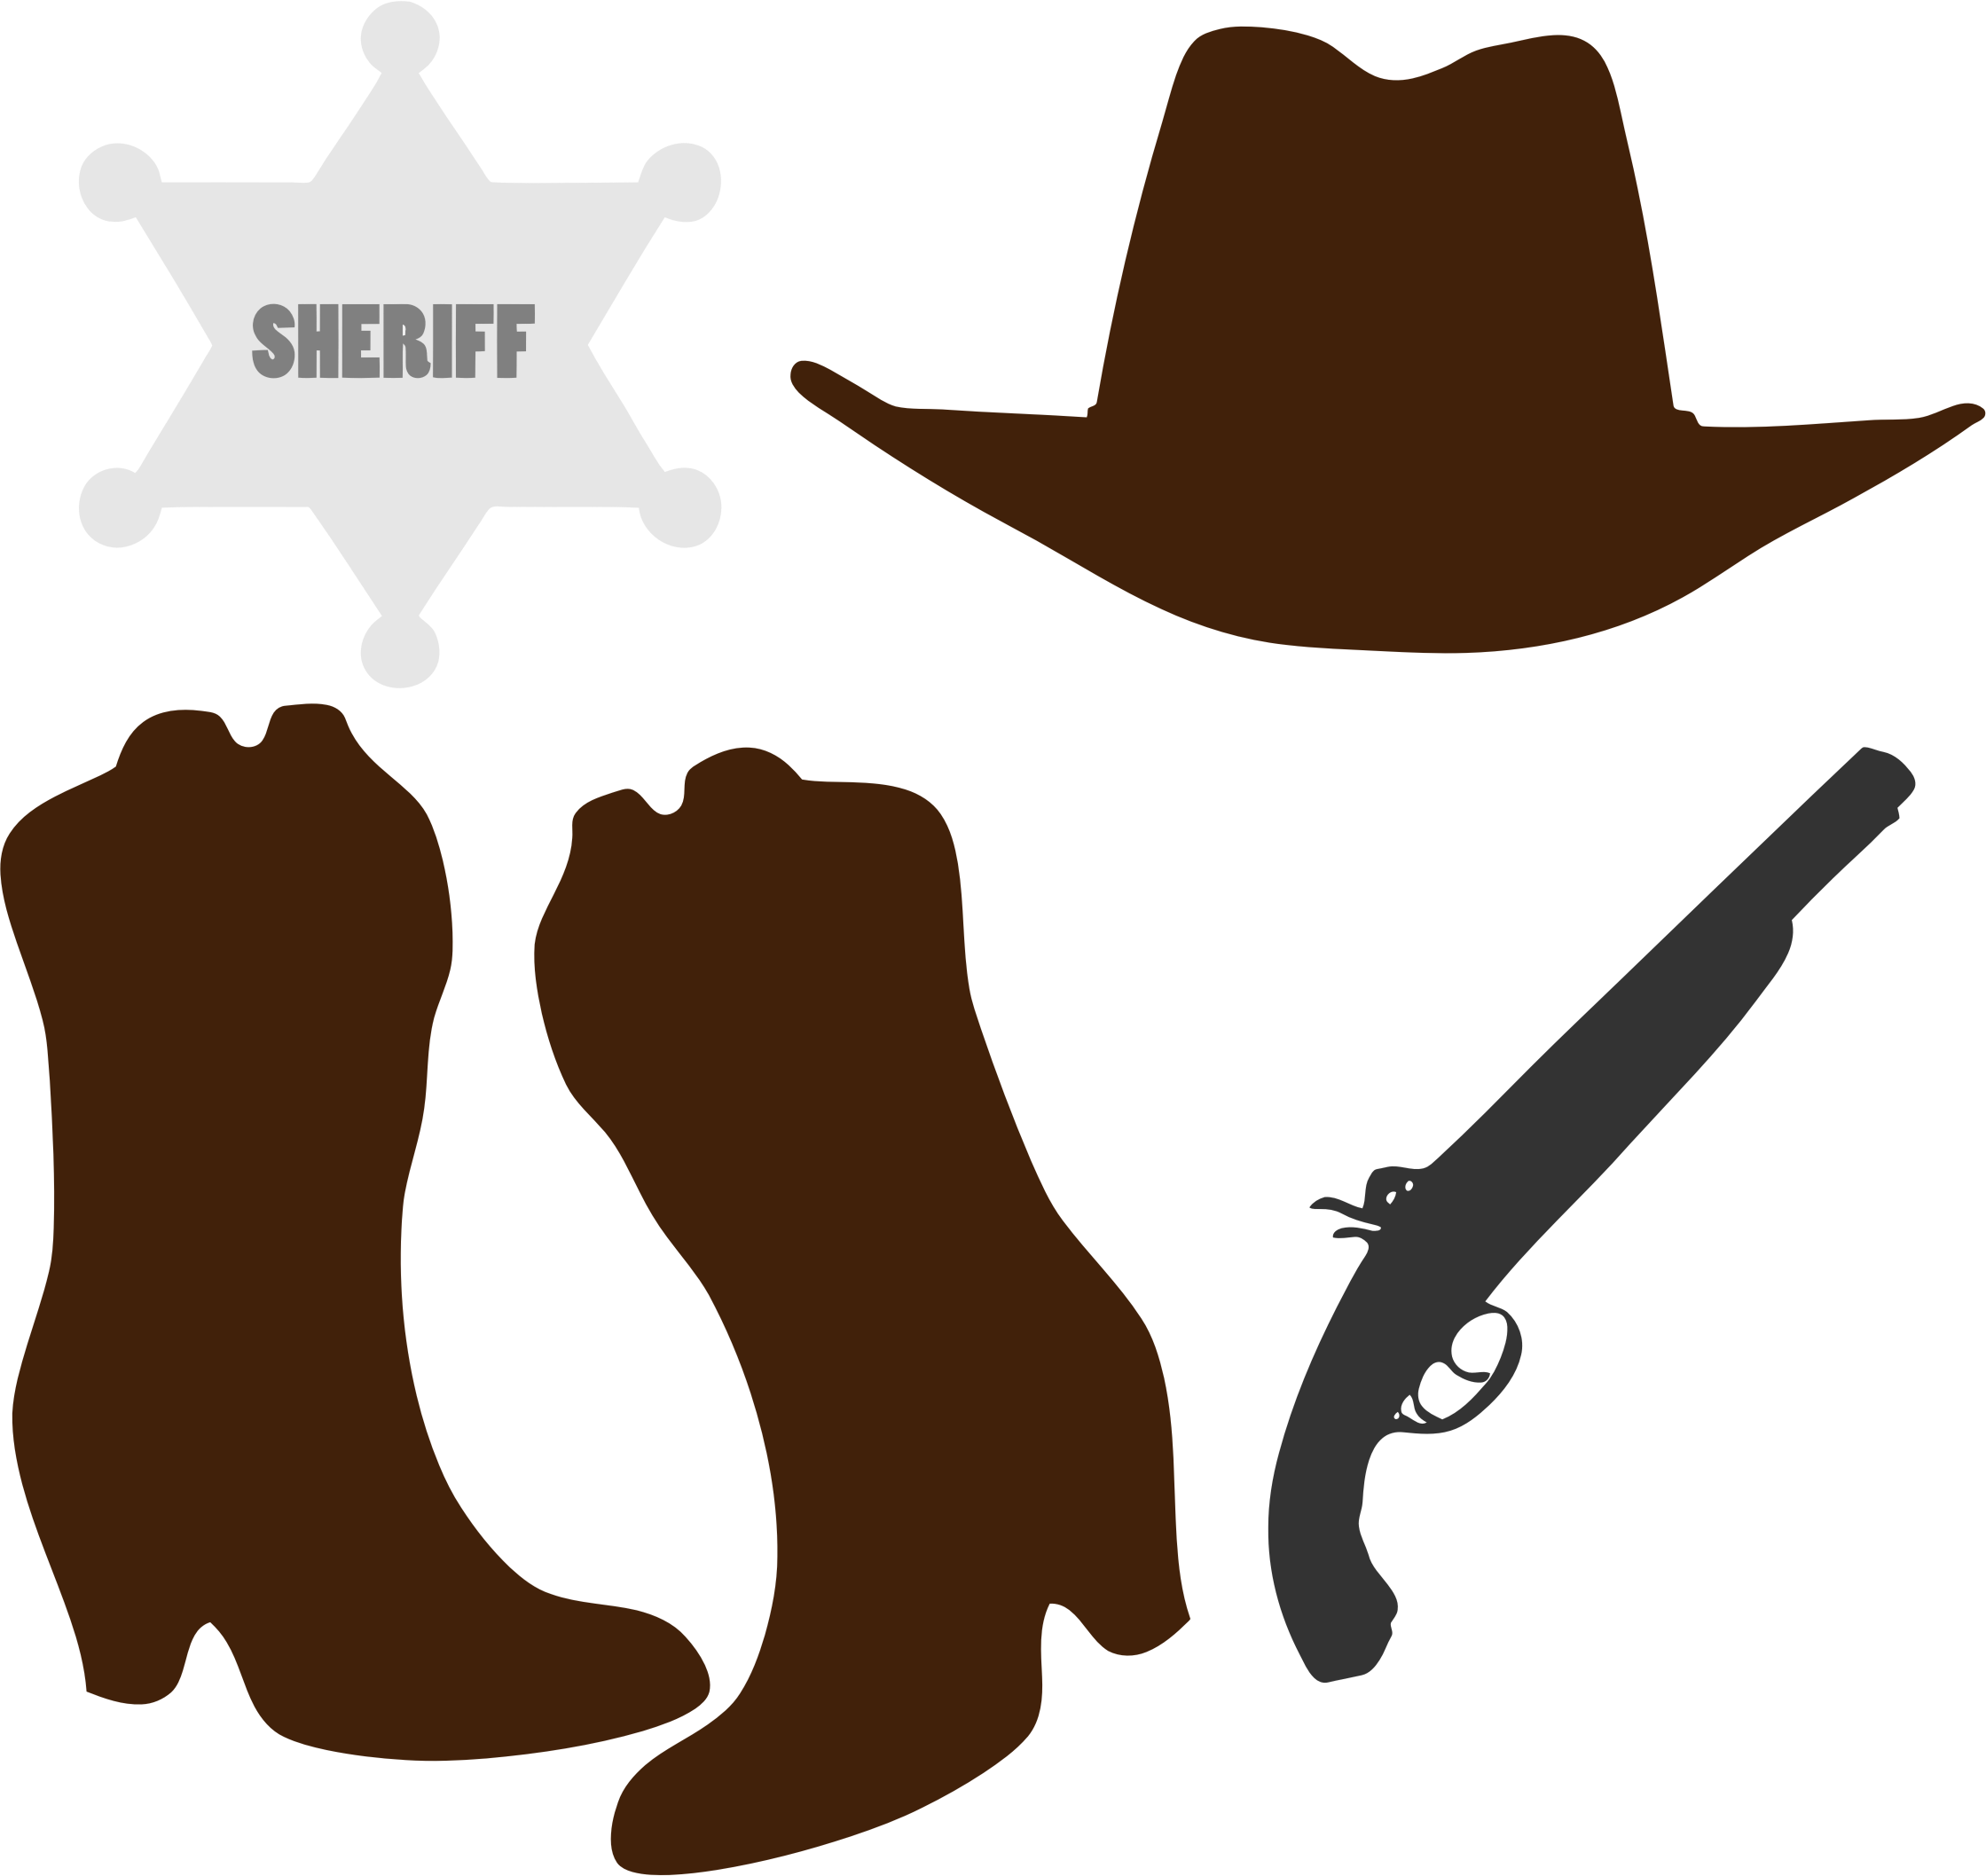 Cowboy clipart cowboy outfit. Clothing and accessories by